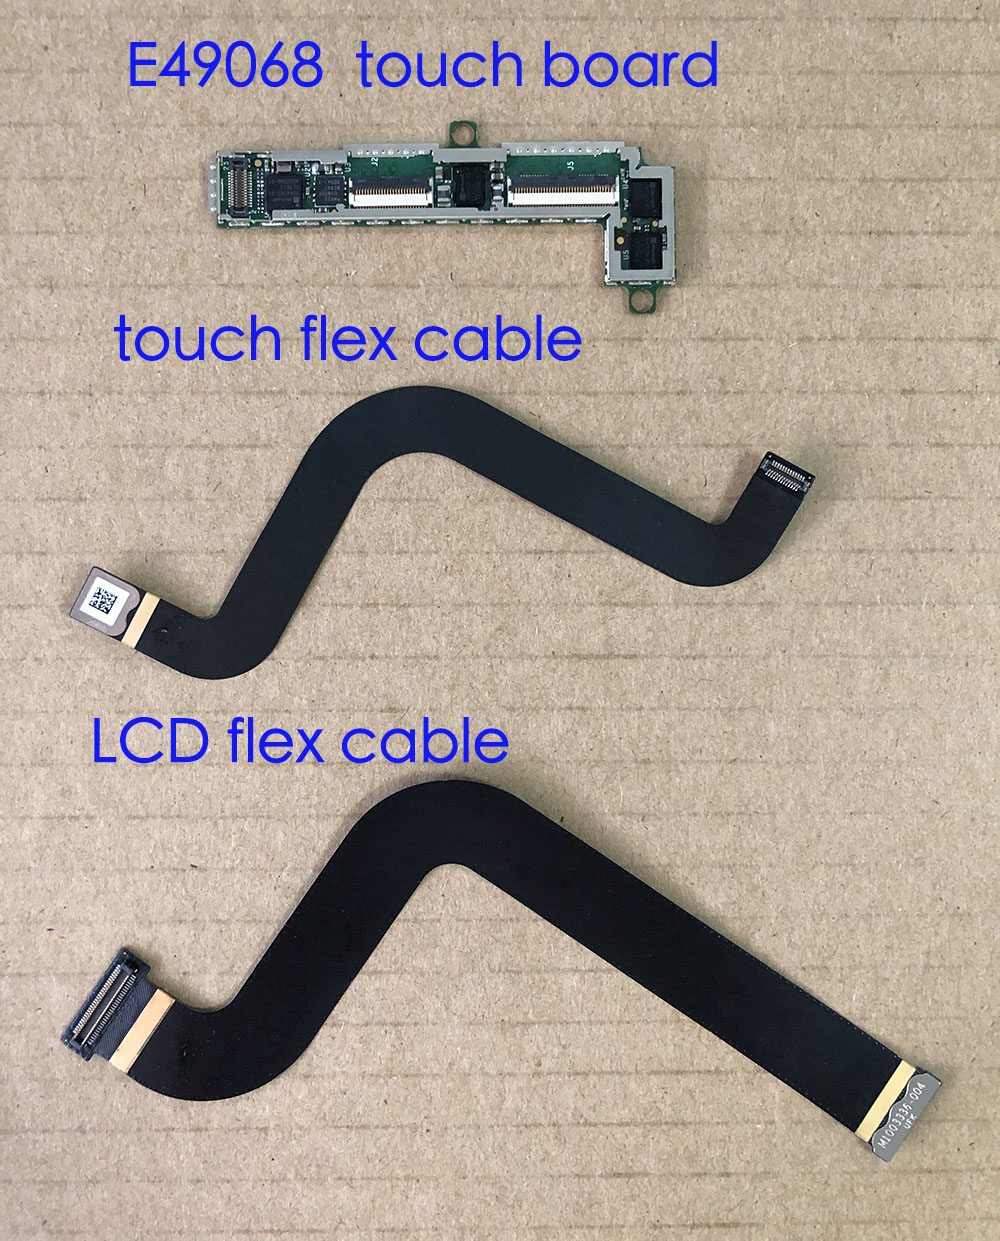 Cable For Microsoft Surface Pro5 Pro 5 1796 Touch LCD Flex Cable Connectors Small Board M1003333-005 M1003336-004